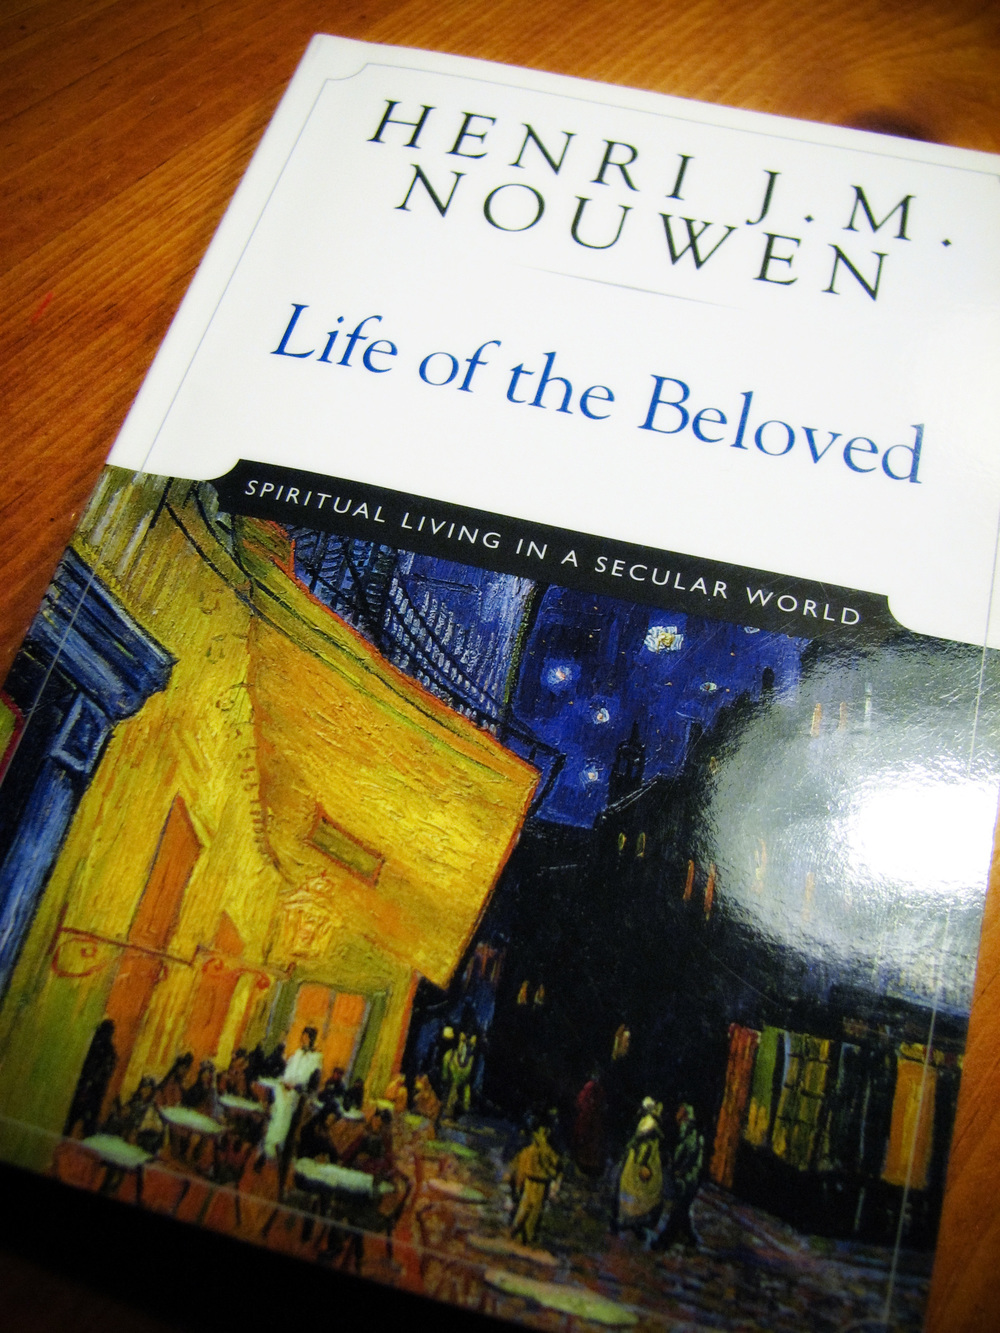 Henri Nouwen: LIfe of the Beloved